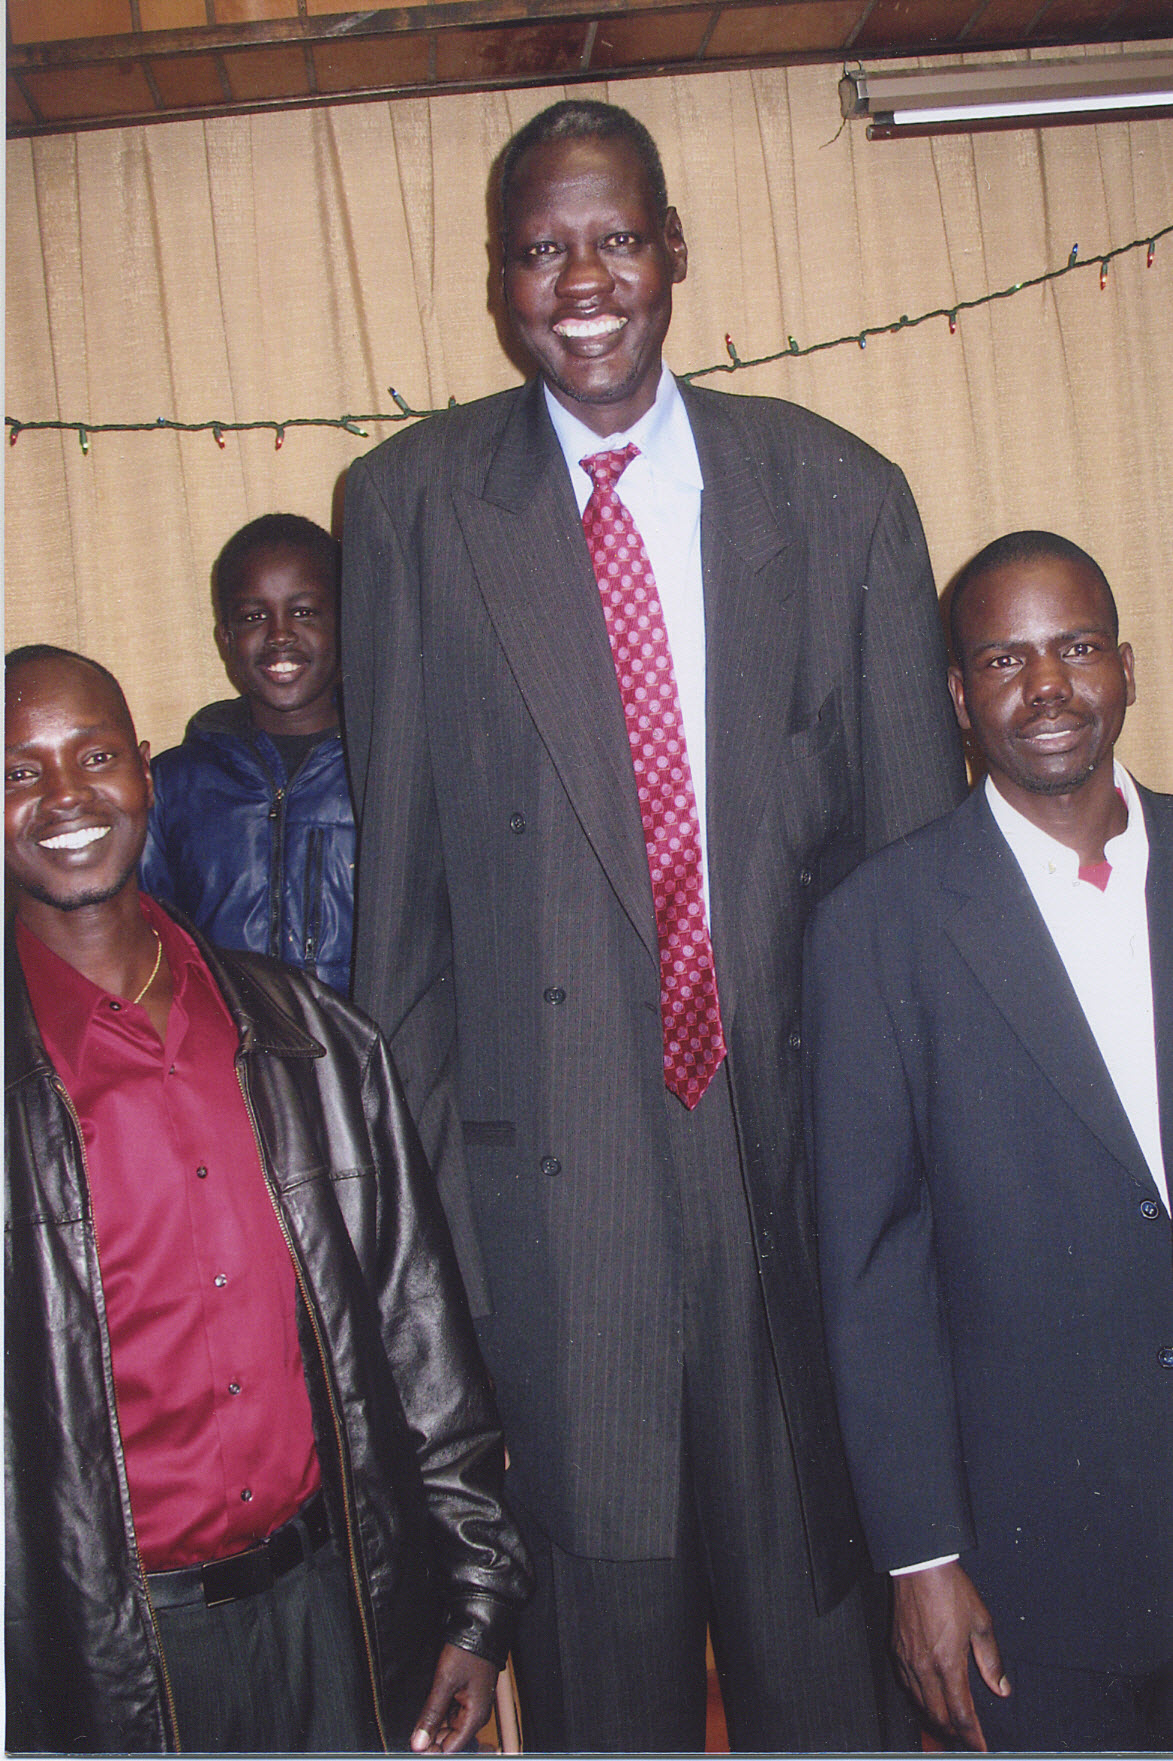 The Legendary Nbas Tallest Player Manute Bol The Iconic South